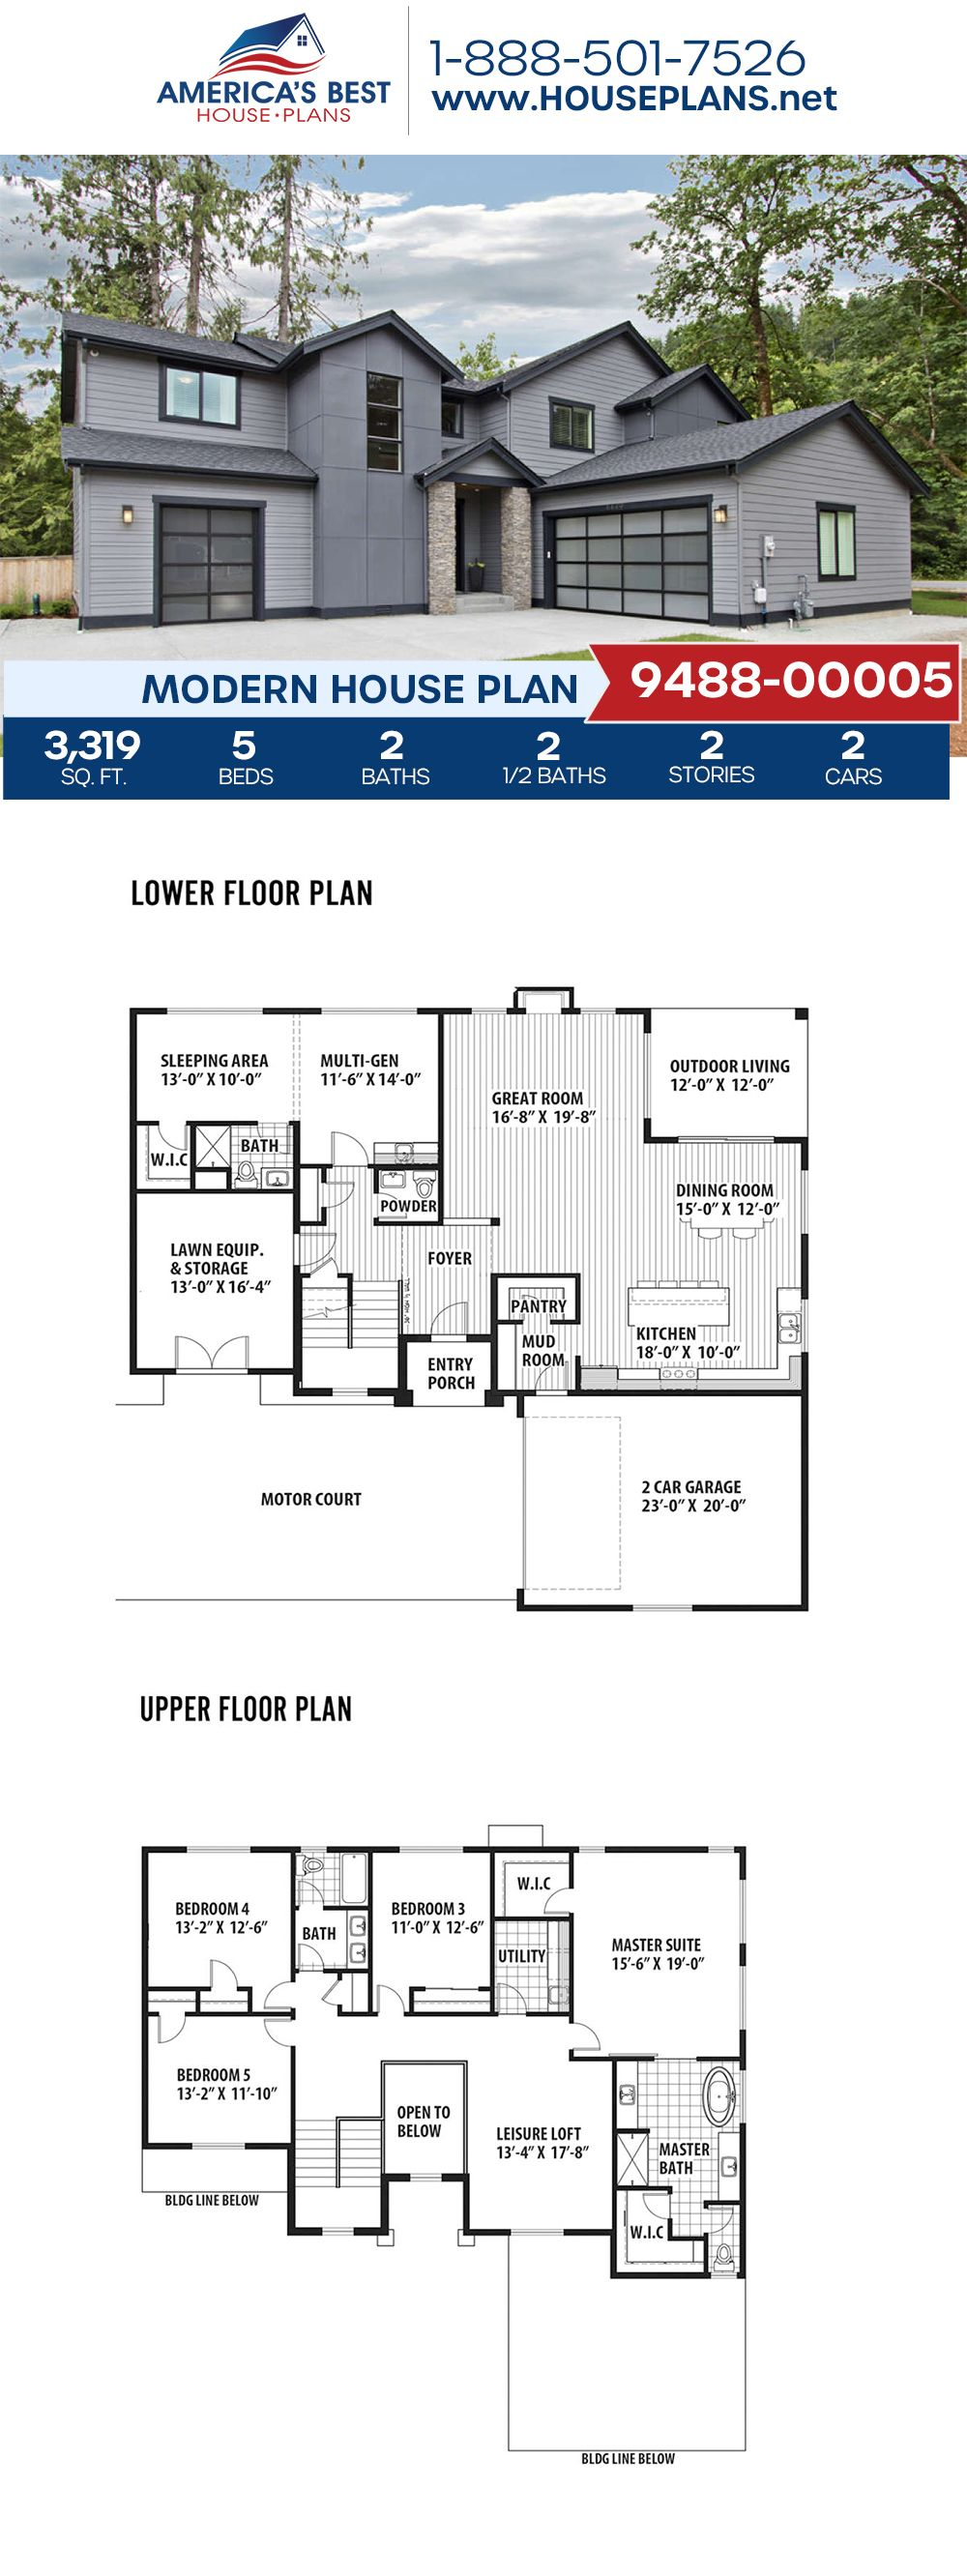 House Plan 9488 00005 Modern Plan 3 319 Square Feet 5 Bedrooms 3 Bathrooms In 2020 Small House Design Architecture Dream House Plans House Layout Plans